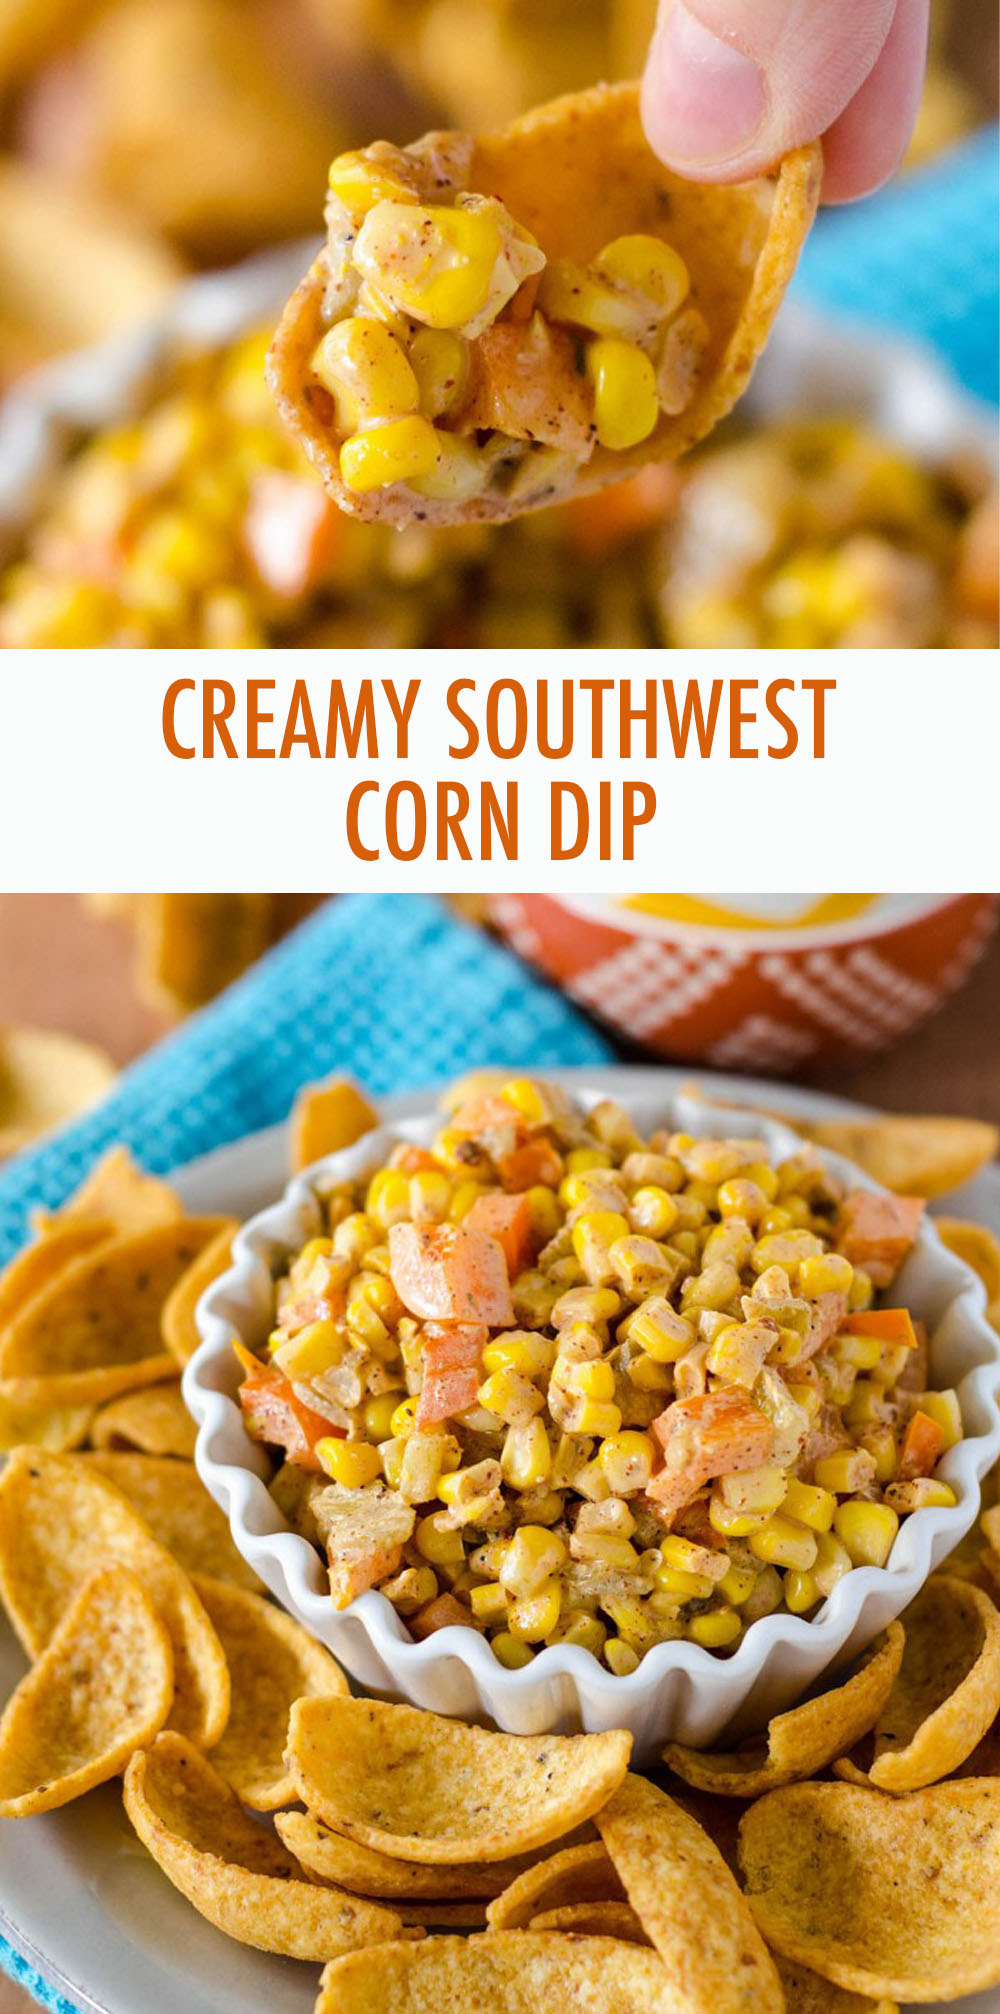 Lightened up creamy corn dip, spiced with homemade taco seasoning. Great with corn or tortilla chips!